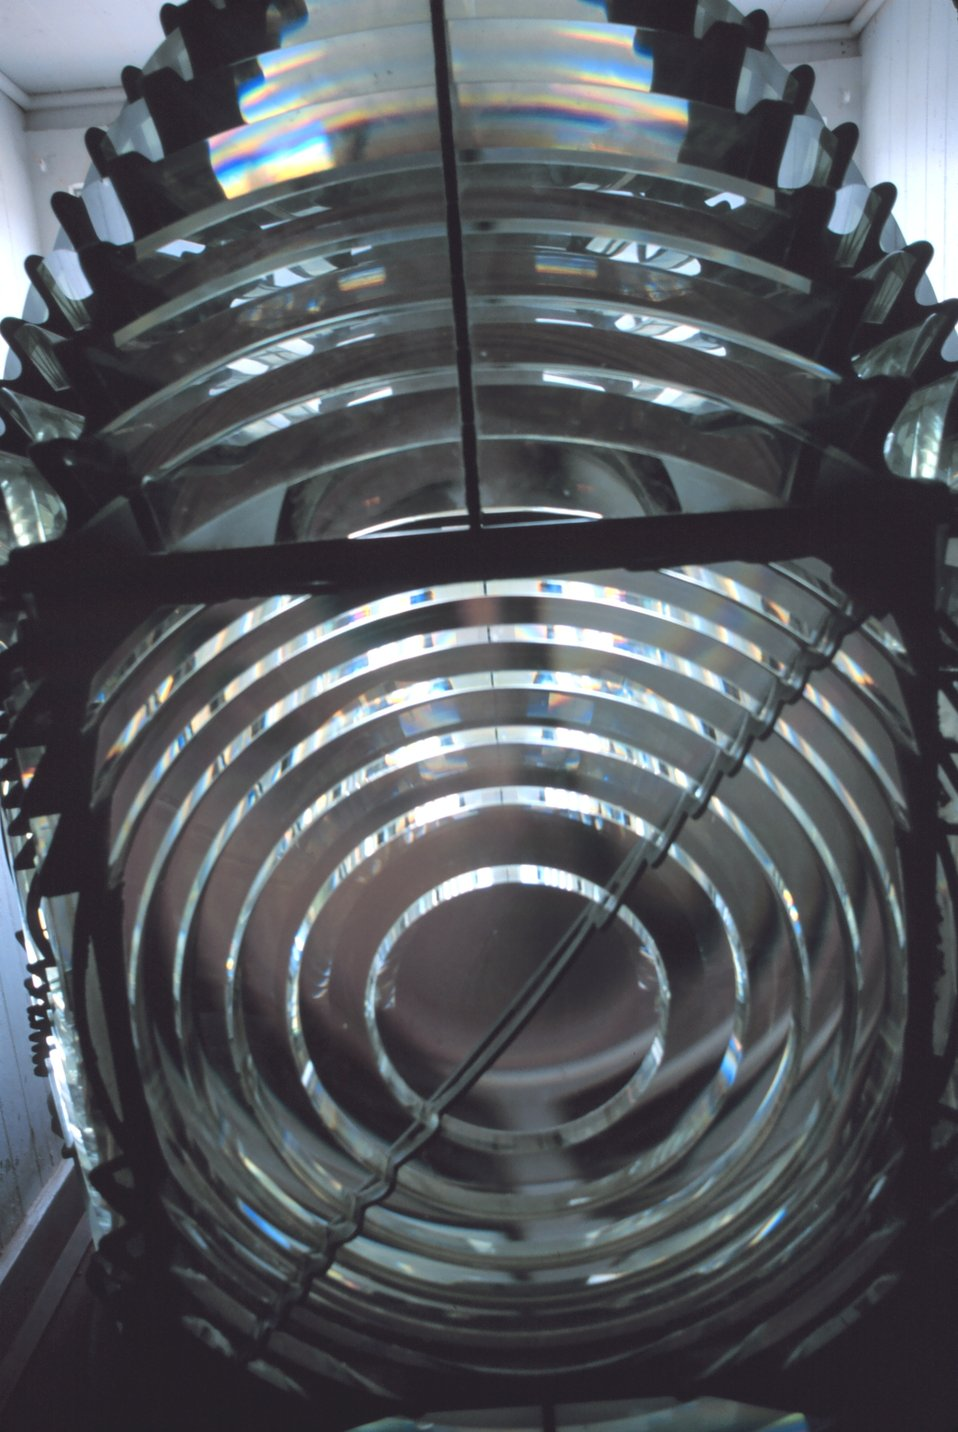 The exquisite workmanship of master lensmakers helped illuminate our coast.  This Fresnel Lens can be viewed at the Hooper Strait Lighthouse at the Chesapeake Bay Maritime Museum.